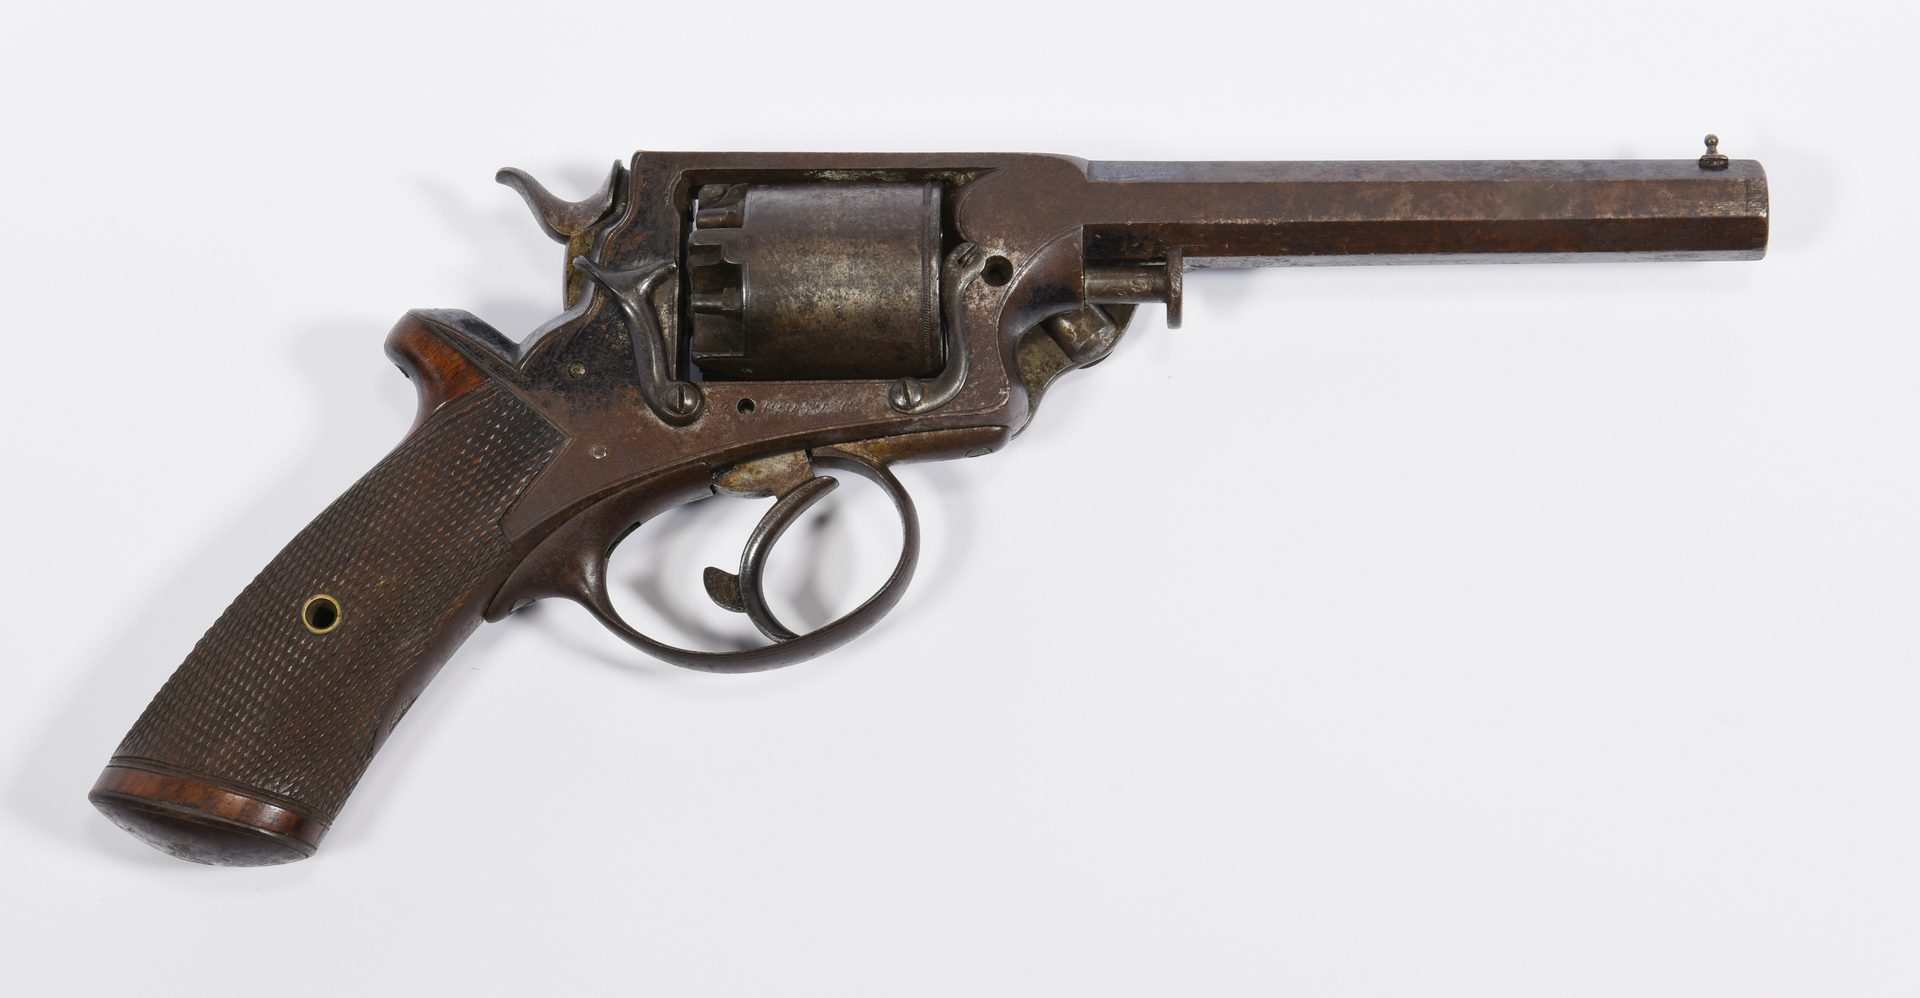 Lot 297: Tranter Revolver, Side Arm of Lt. Colonel Henry Clay Yeatman, Cased with Accoutrements